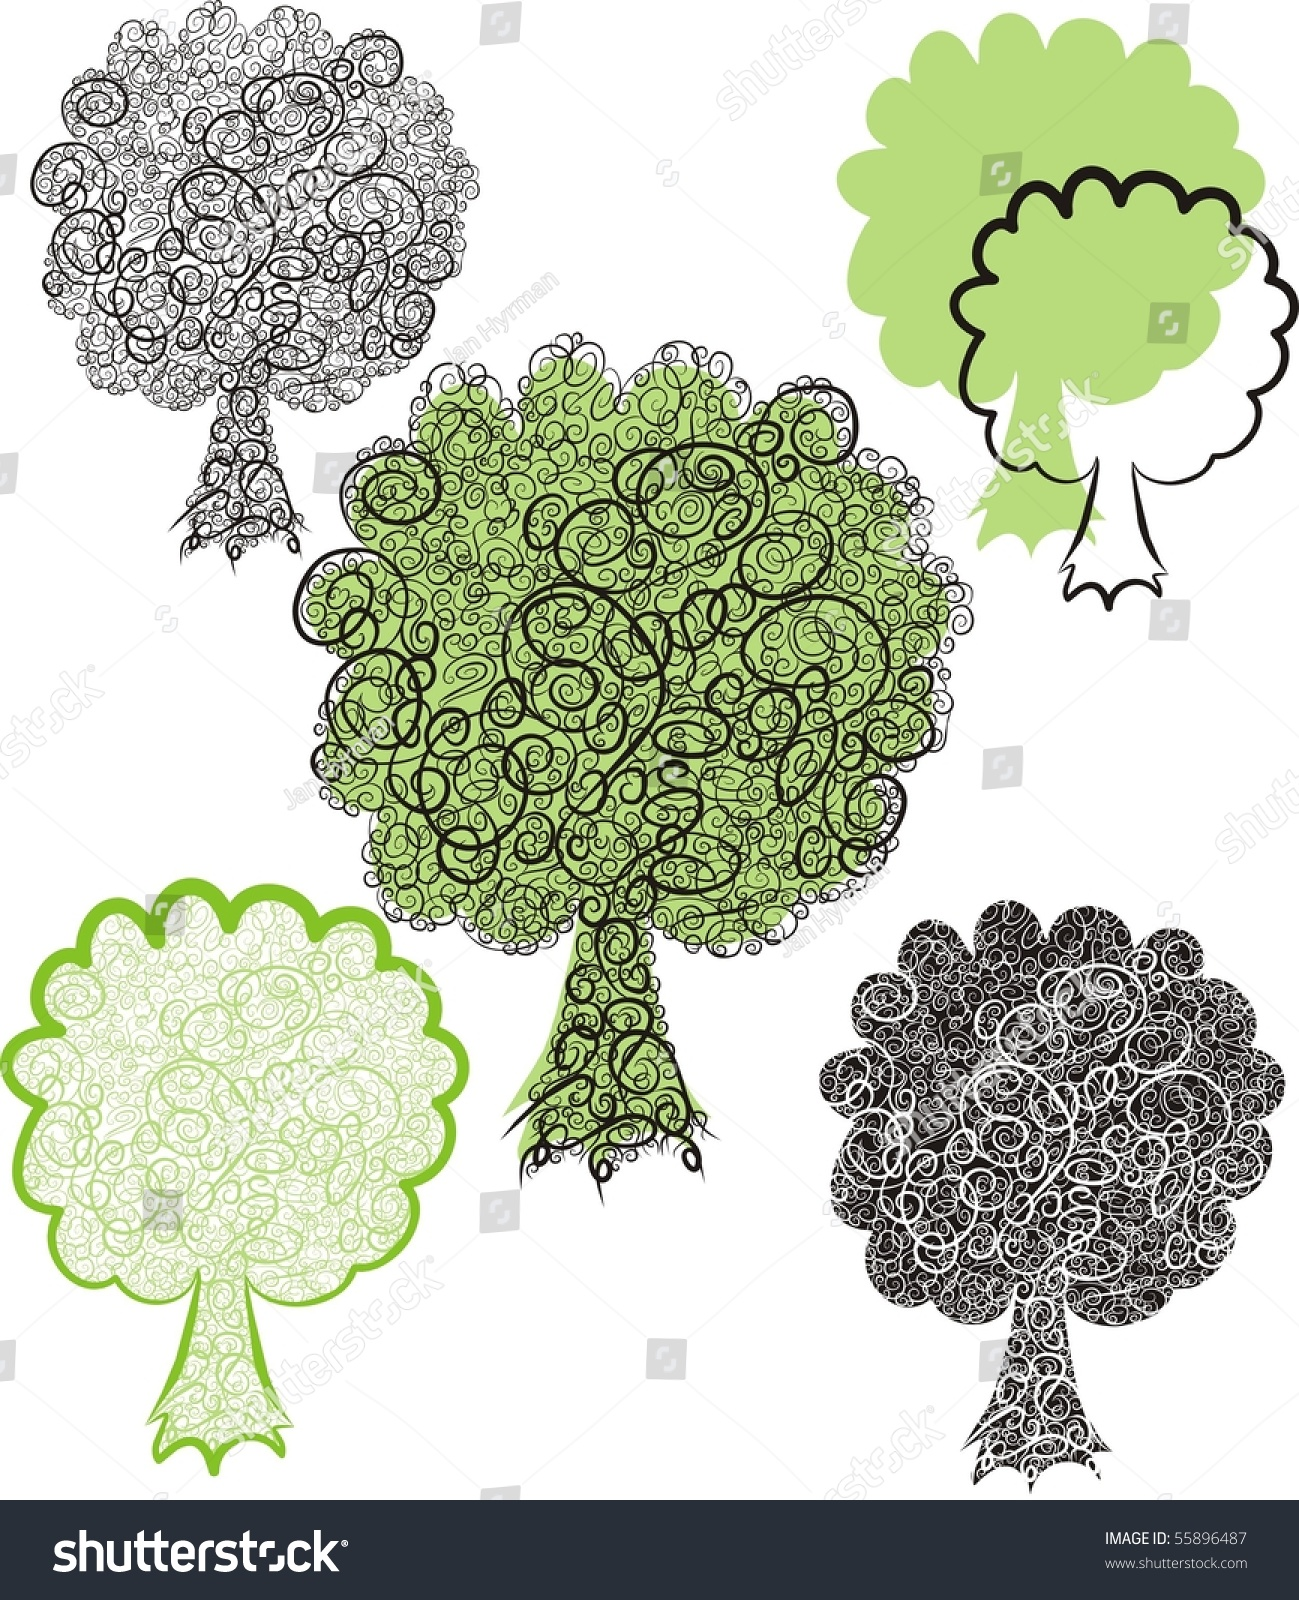 Green Tree Color Vector Illustration Stock Vector